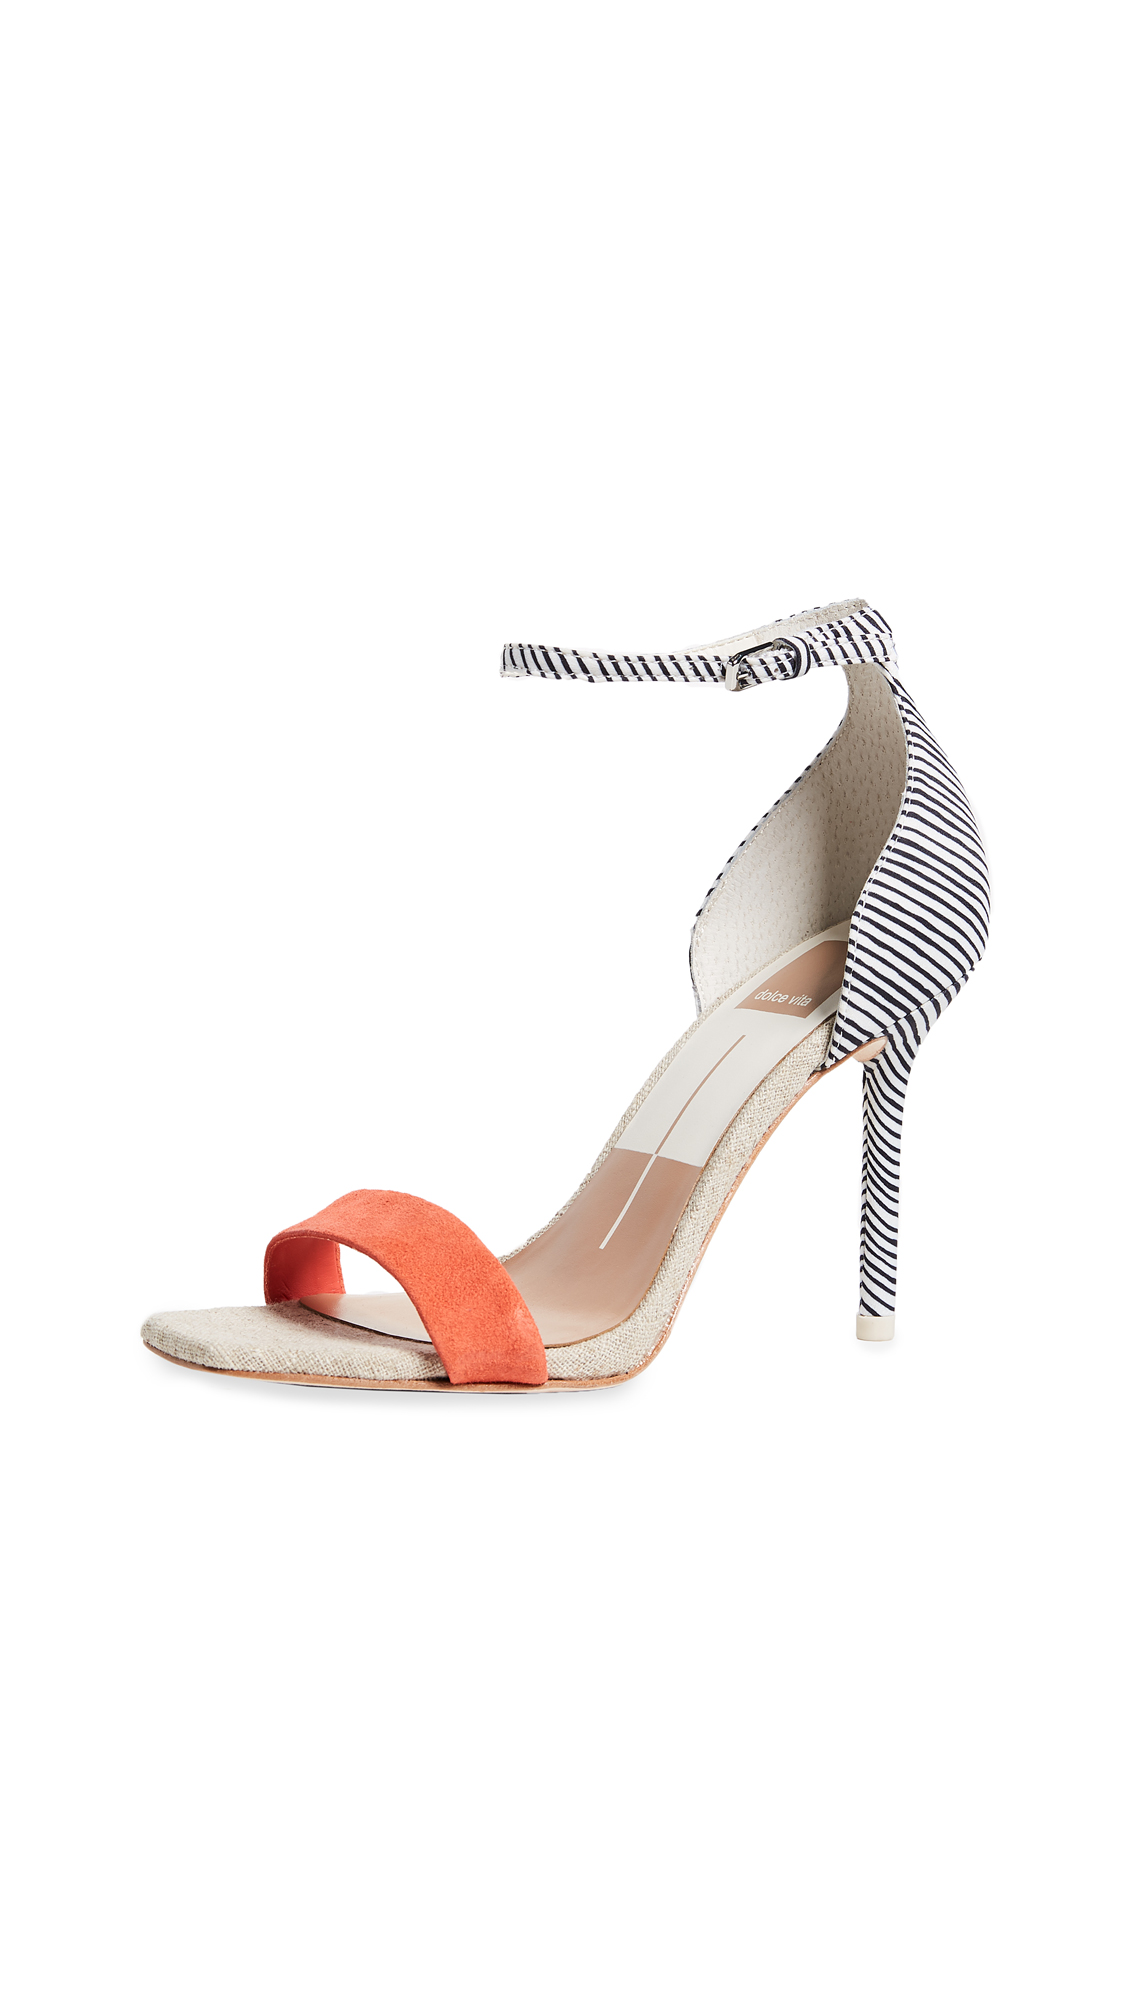 Dolce Vita Halo Ankle Strap Sandals - White Stripe